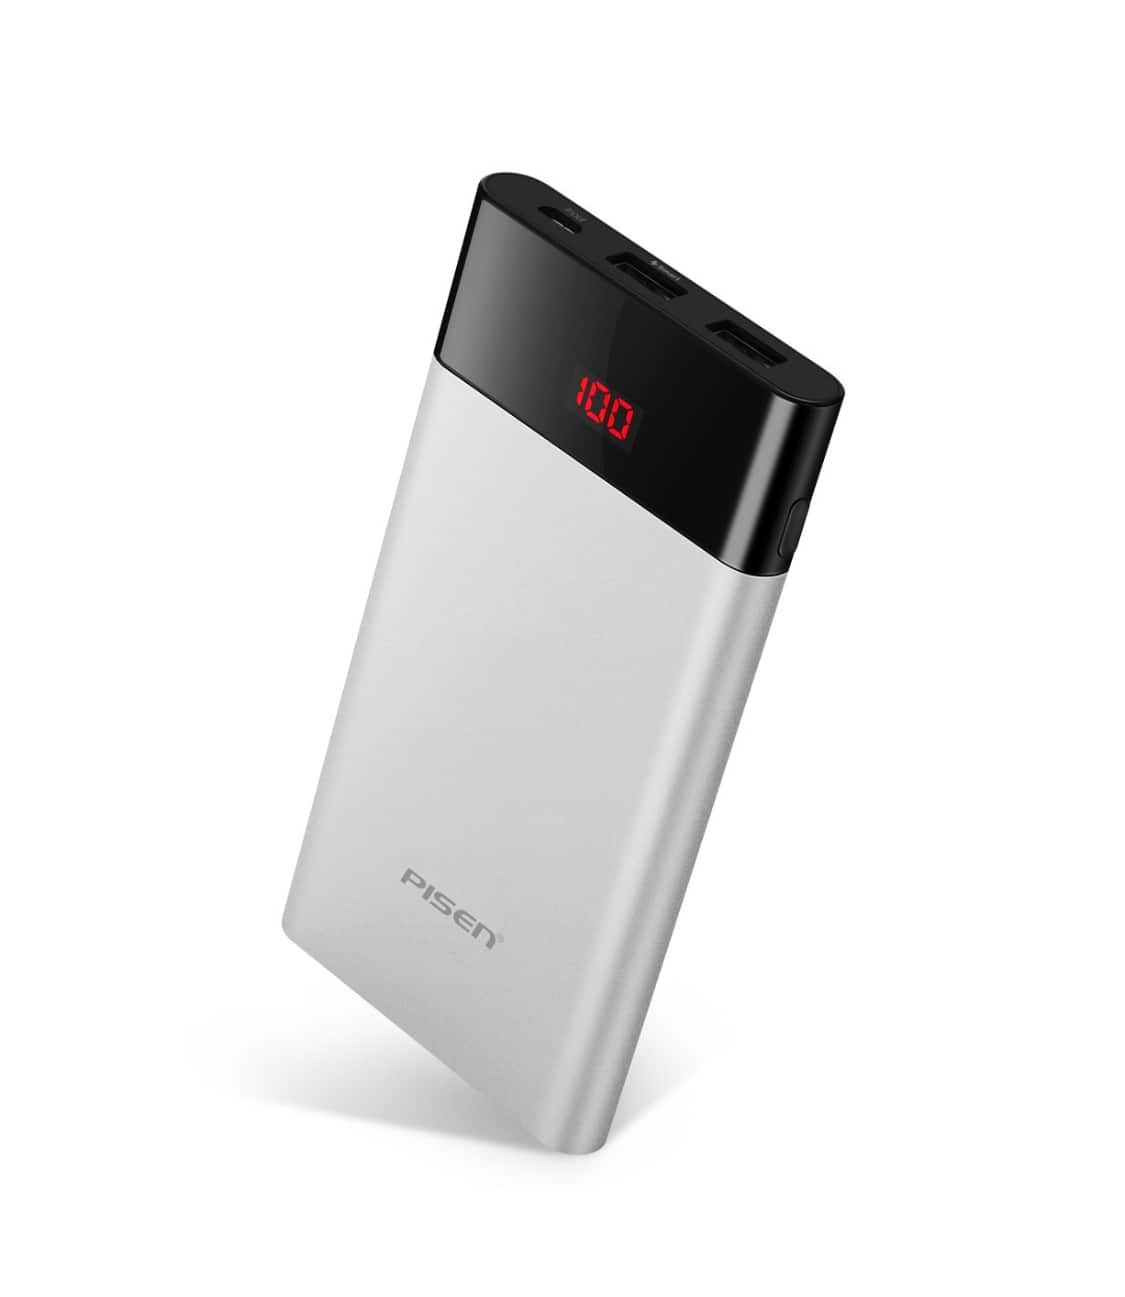 10000mAh Portable Charger w/ LED Display $14.39 @ Amazon + FS